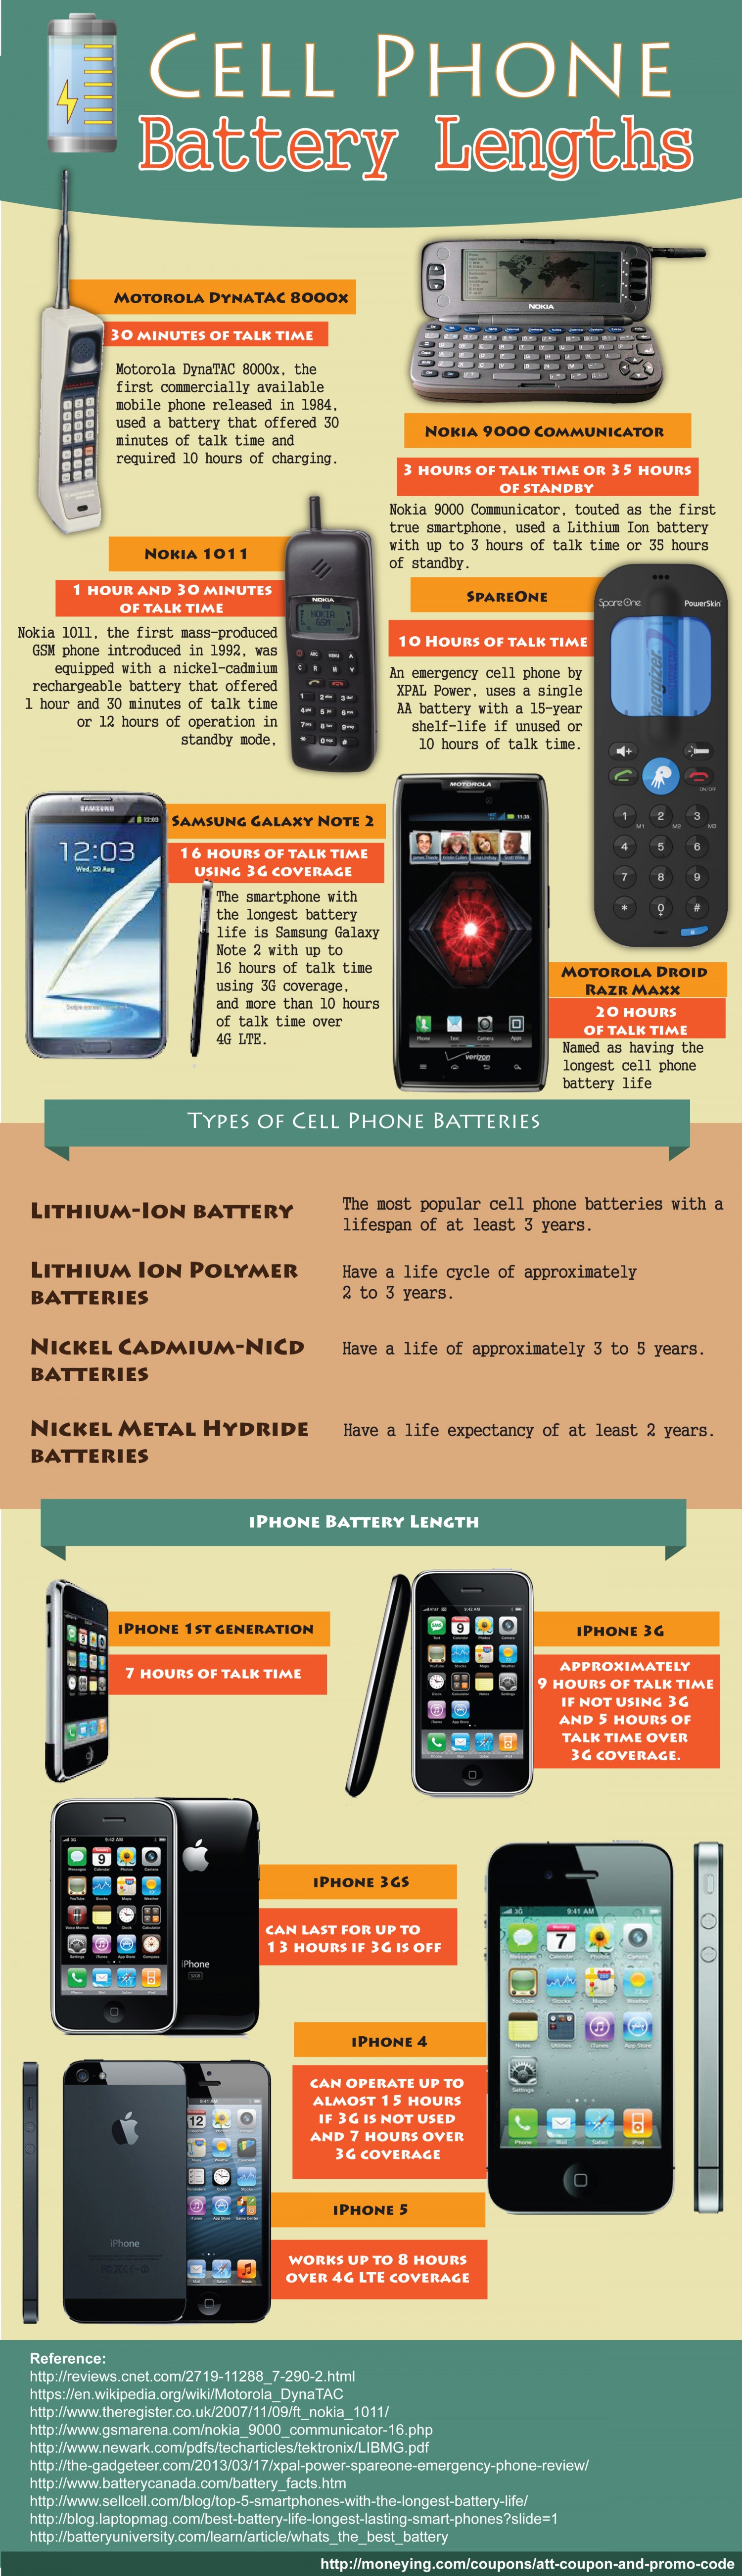 Cell Phone Battery Lengths Infographic